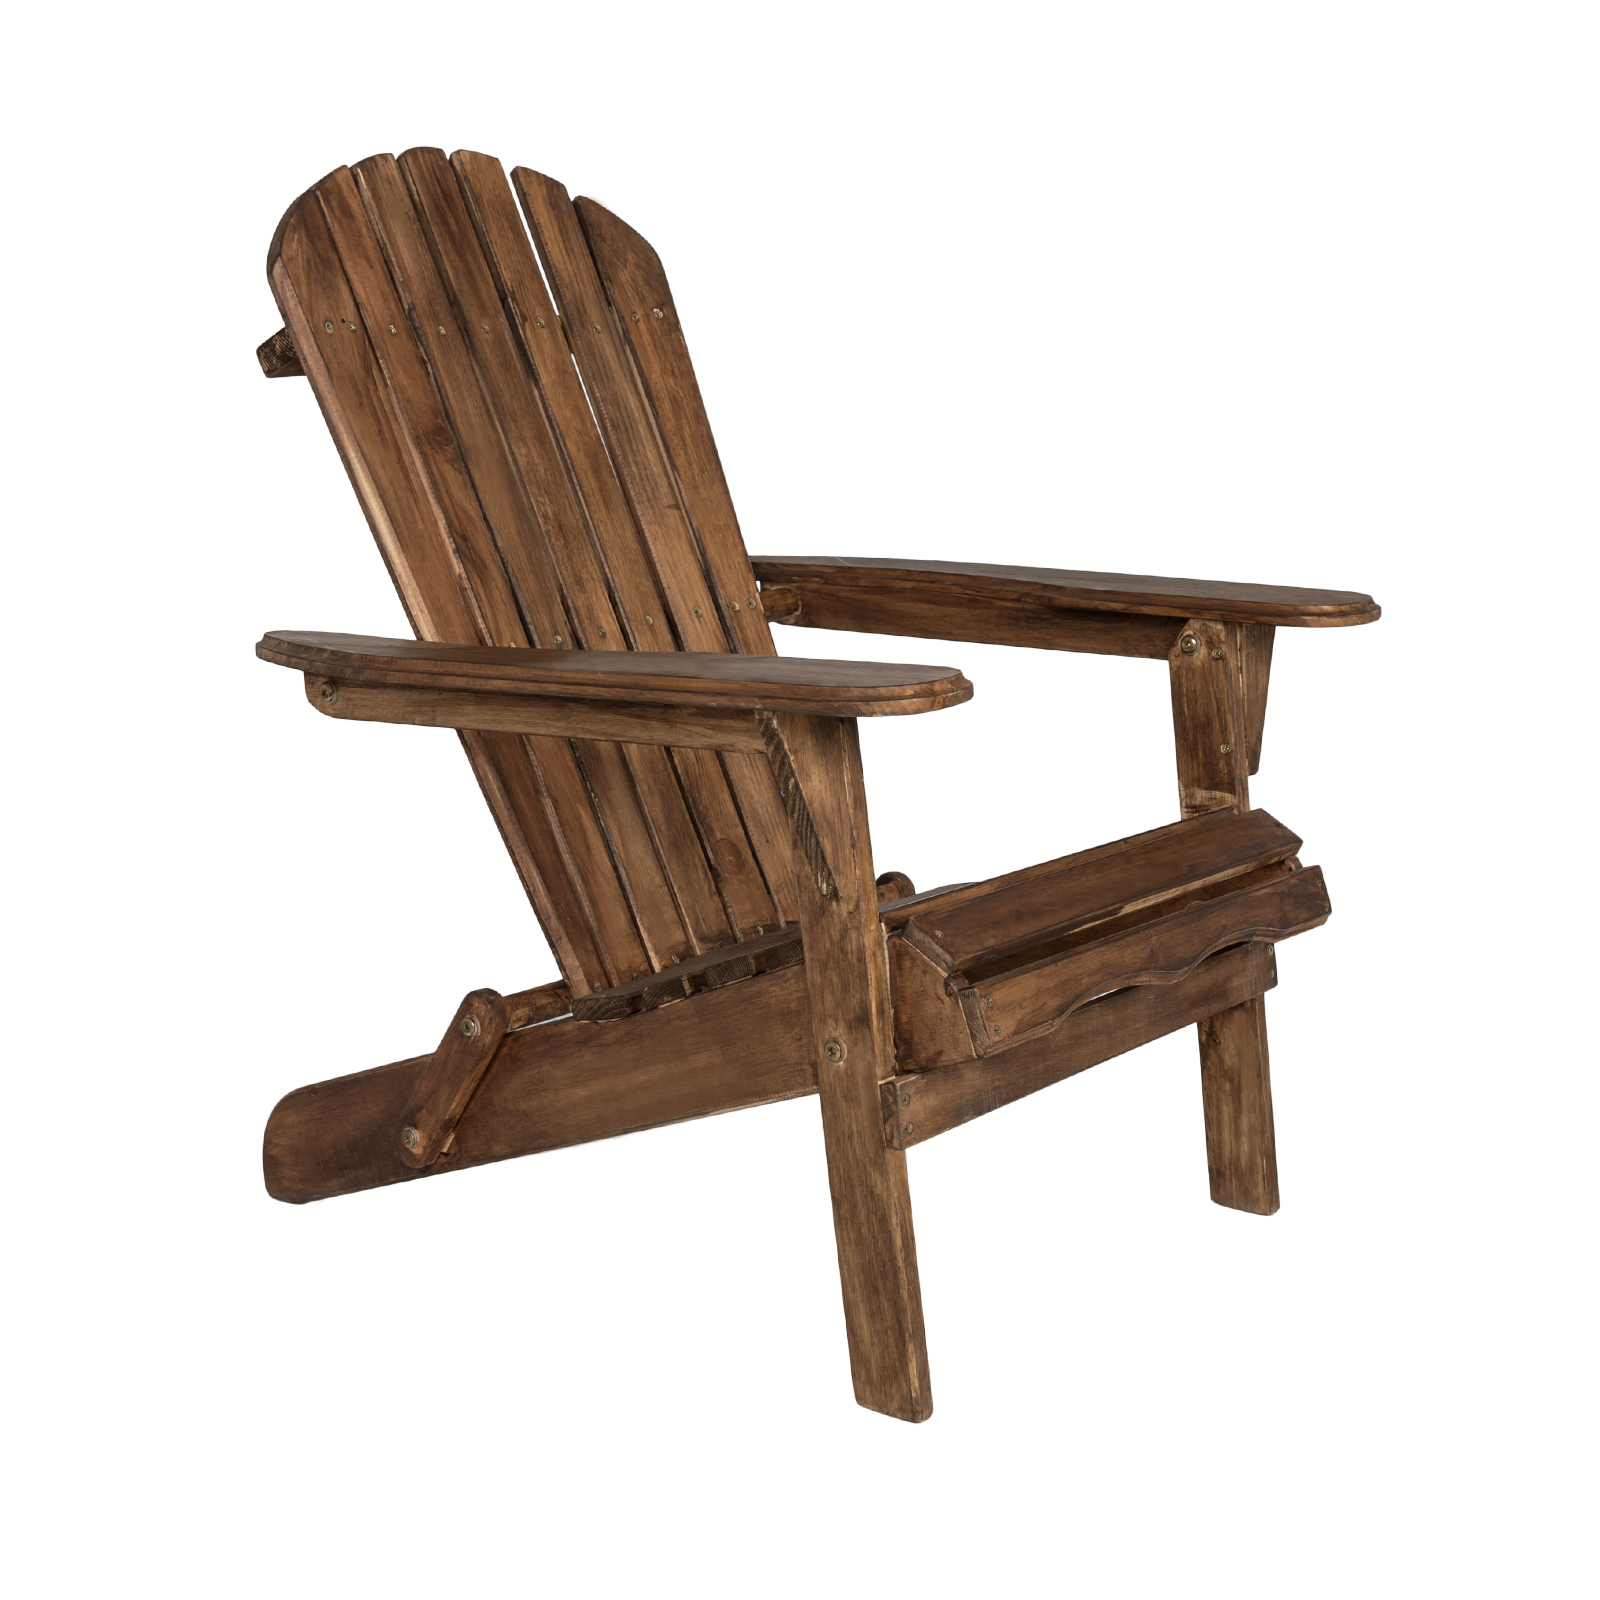 Sensational Adirondack Chair Rental Event Furniture Rental Formdecor Caraccident5 Cool Chair Designs And Ideas Caraccident5Info